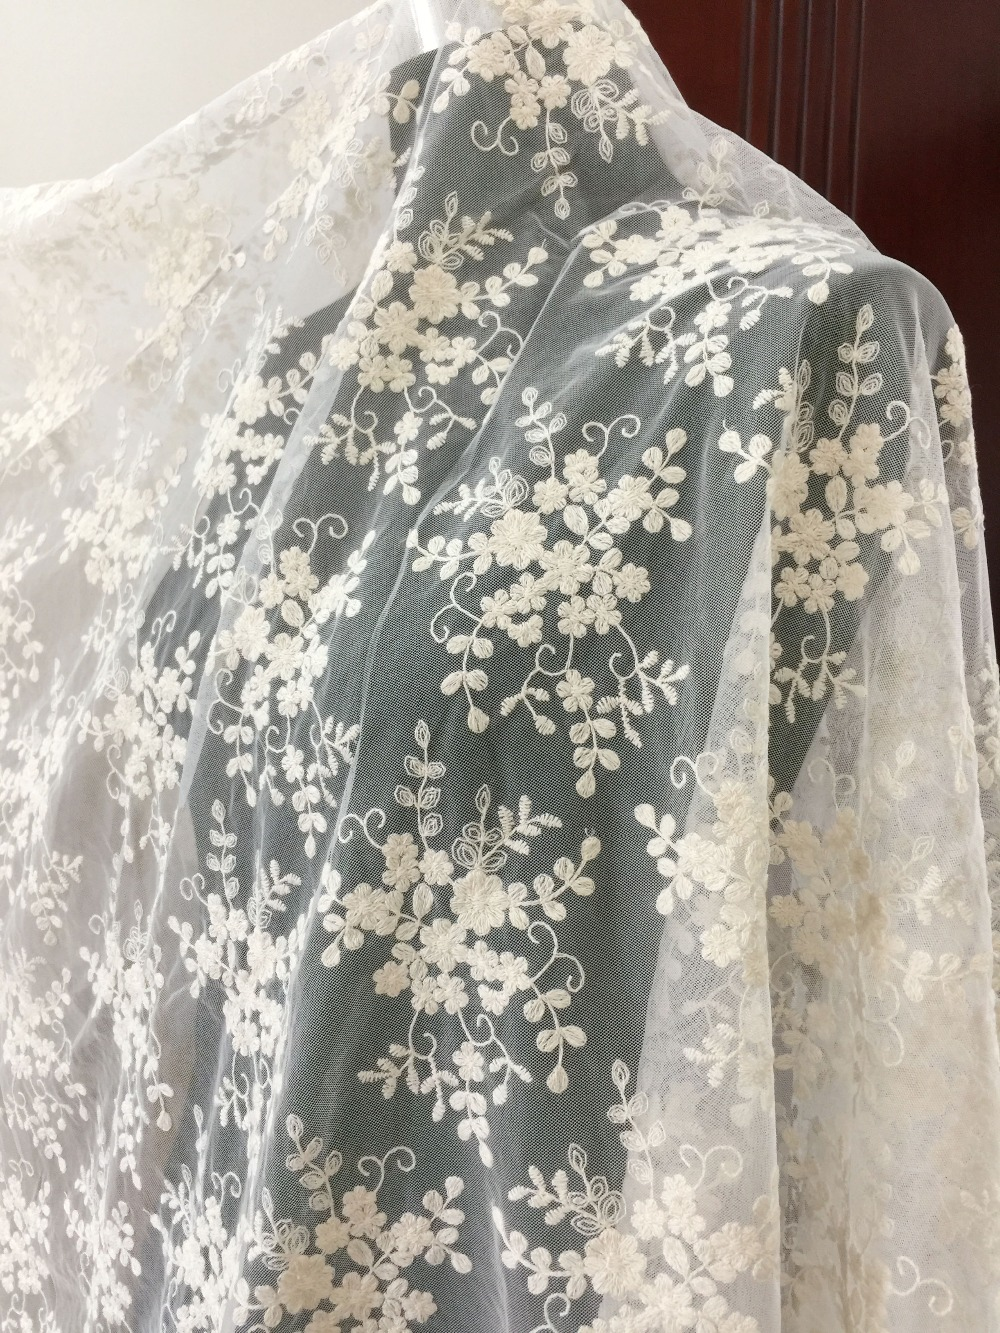 1 yard Beige daisy cotton lace fabric floral lace fabric lace fabric for boho wedding dress wedding gown lace fabric in Fabric from Home Garden